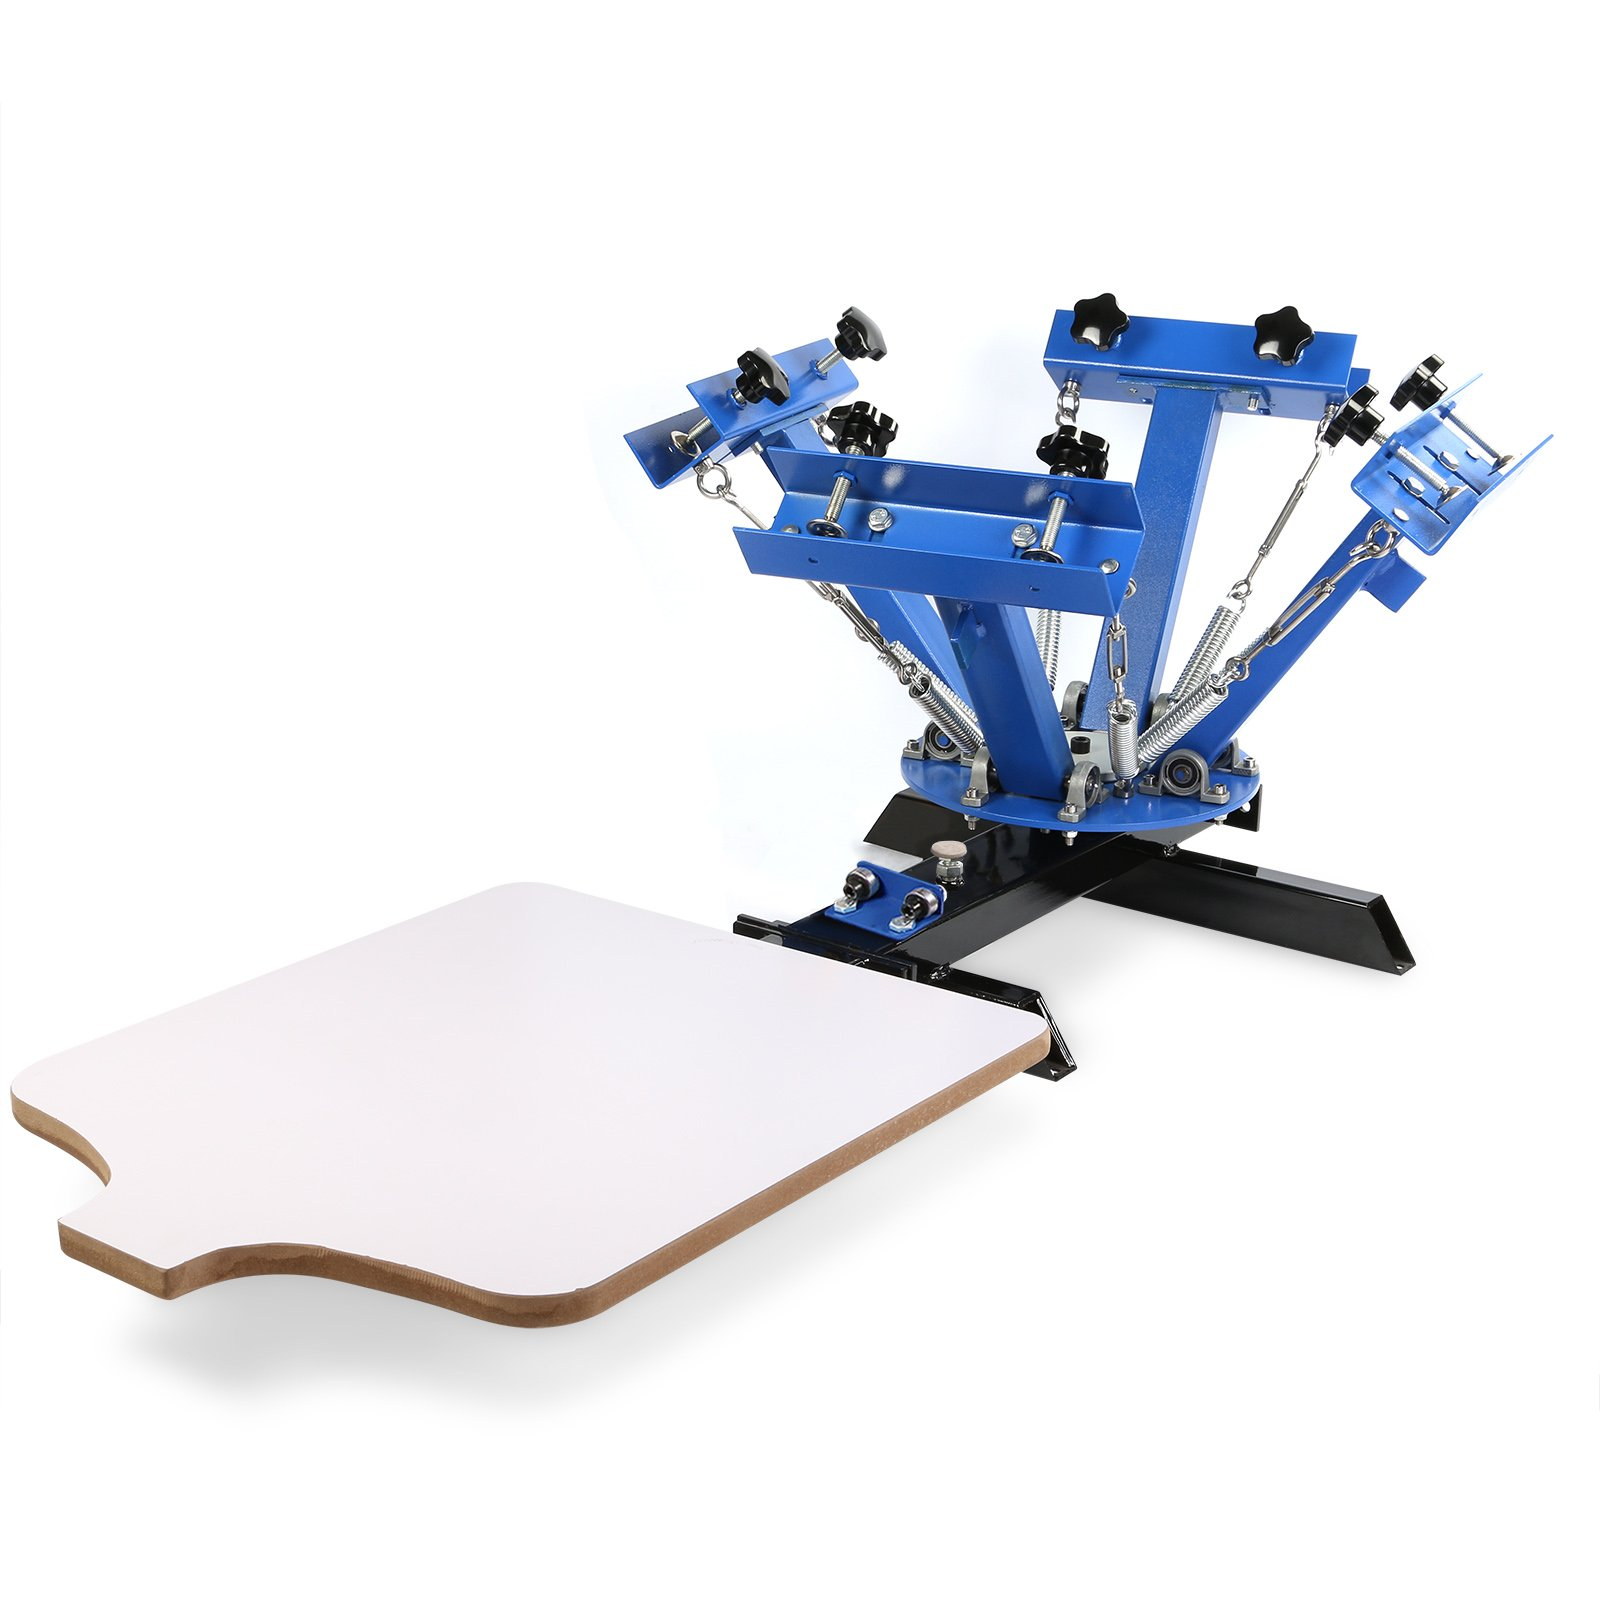 VEVOR Screen Printing Machine Screen Printing Press 4 Color 1 Station Silk Screen Printing for T-Shirt DIY Printing Removable Pallet by VEVOR